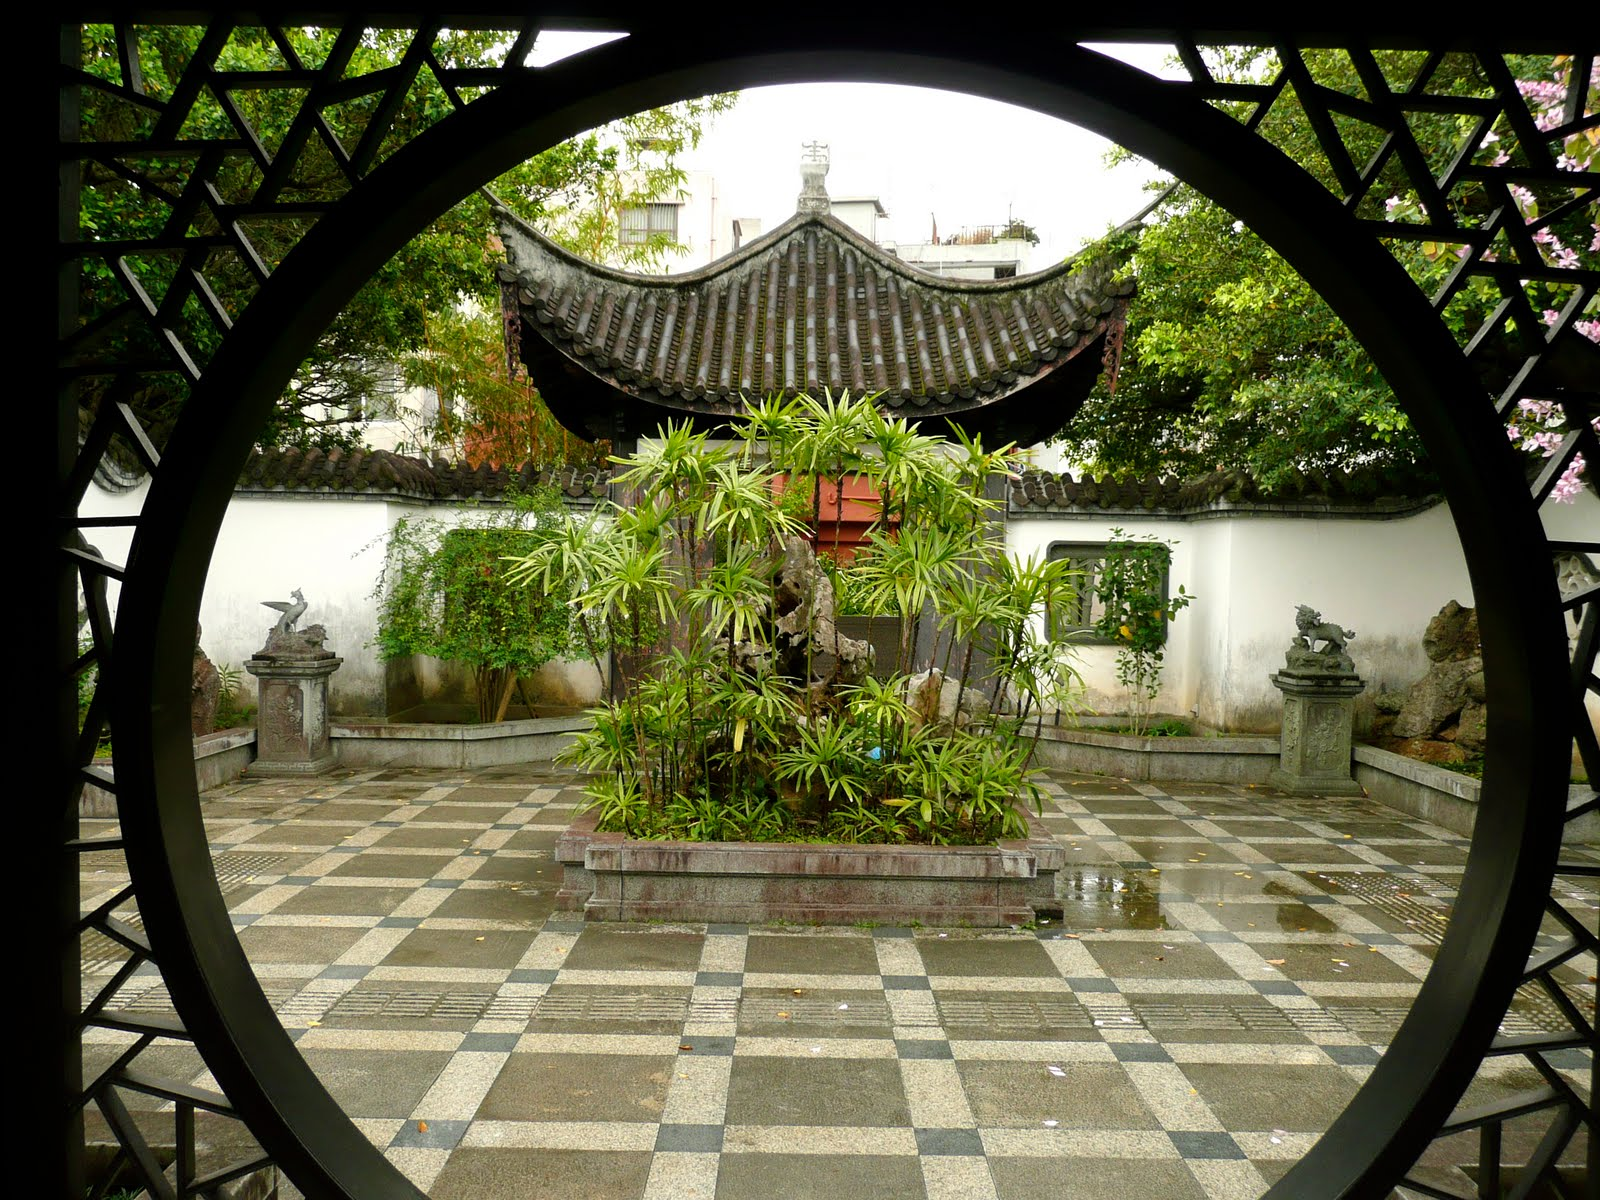 Lost In Transition: The Chinese Garden: Marvel Of Man And